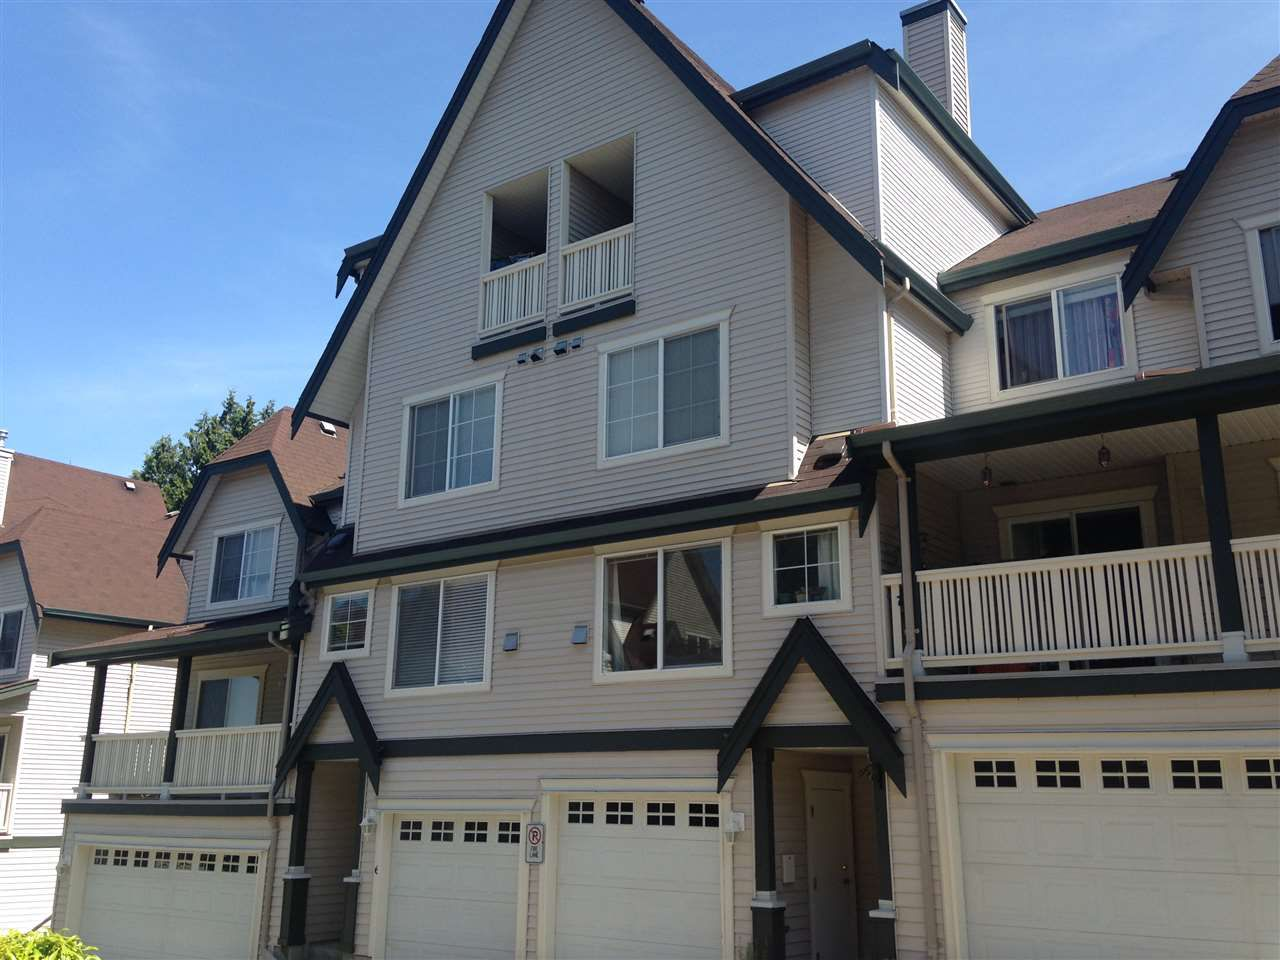 """Main Photo: 5 15355 26 Avenue in Surrey: King George Corridor Townhouse for sale in """"SOUTHWIND"""" (South Surrey White Rock)  : MLS®# R2068643"""